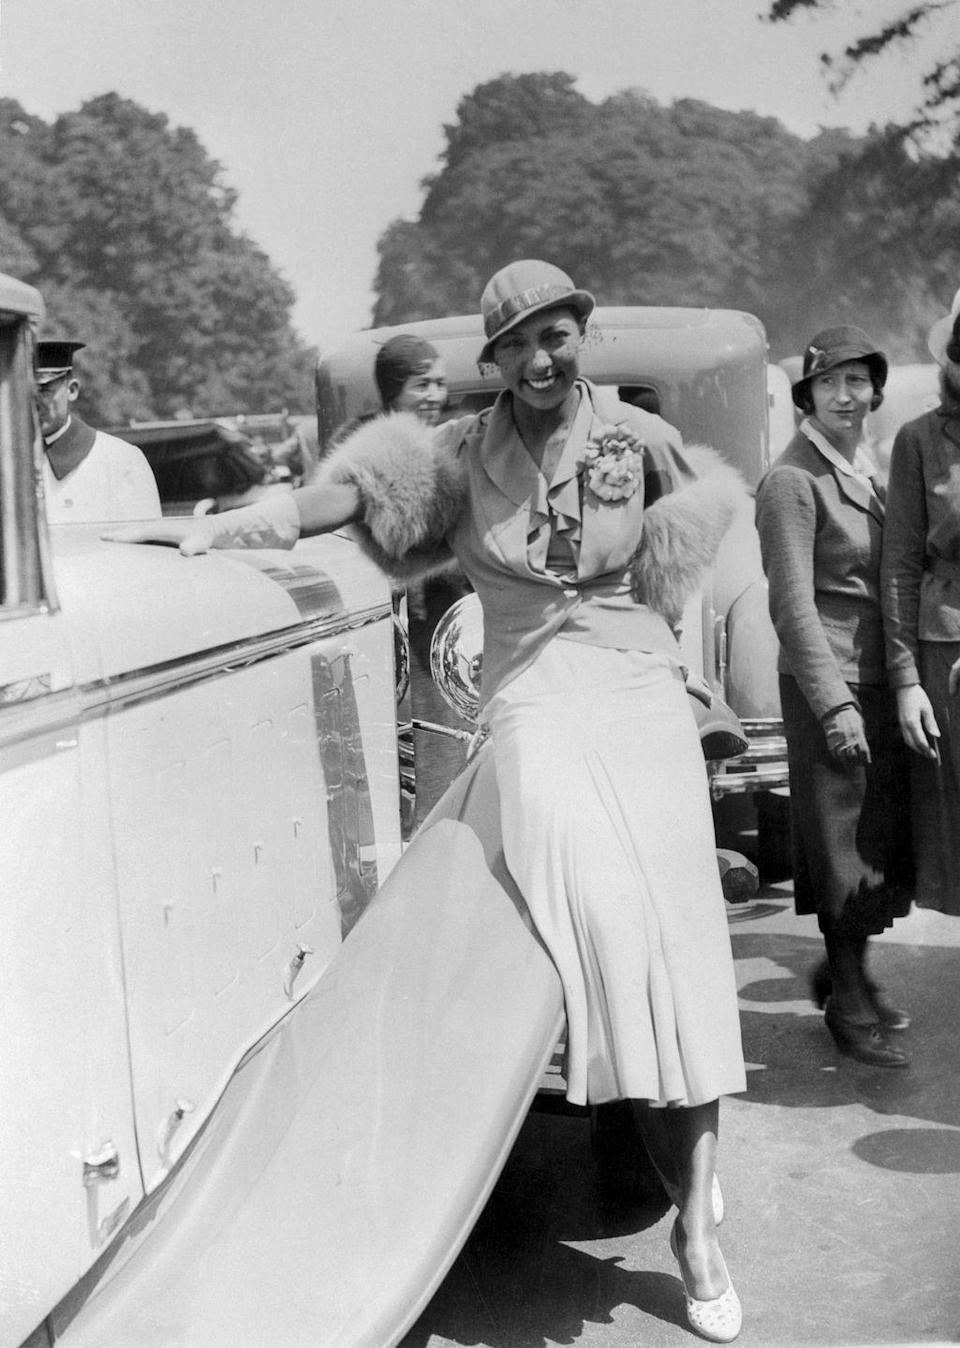 <p>Baker transitioned into films and earned her first major role in 1927's <em>Siren of the Tropics</em>. It was a box office hit and she was awarded with a starring role in 1934 in <em>Zouzou</em>, making her one of the first Black actresses to land a leading role in Hollywood. She followed it up with another hit the next year, <em>Princesse Tam-Tam</em>.</p>